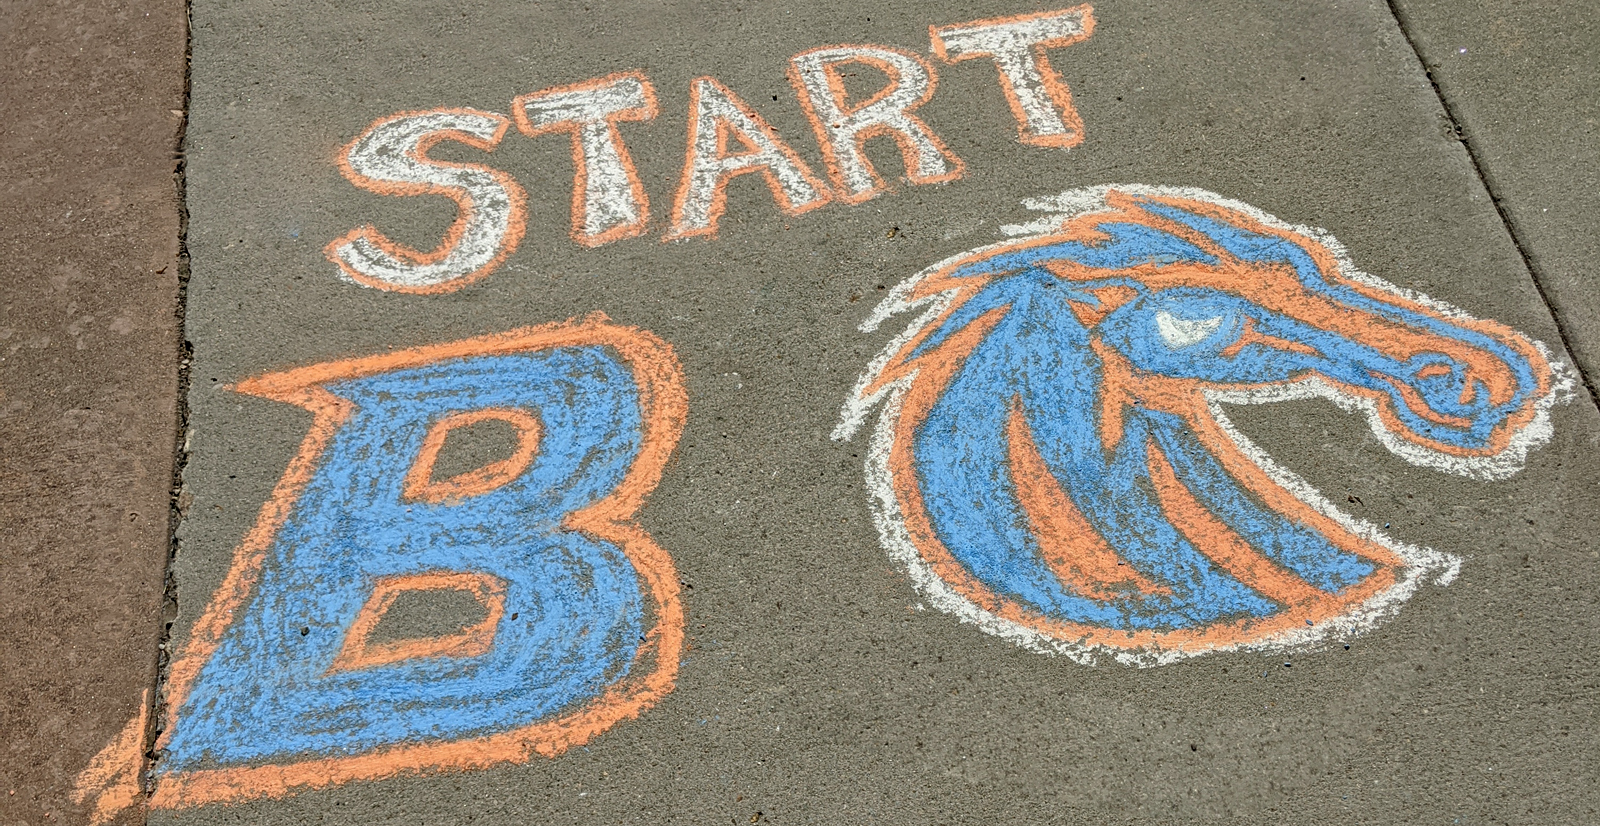 Chalk Drawing race start line with the B logo and Bronco Head